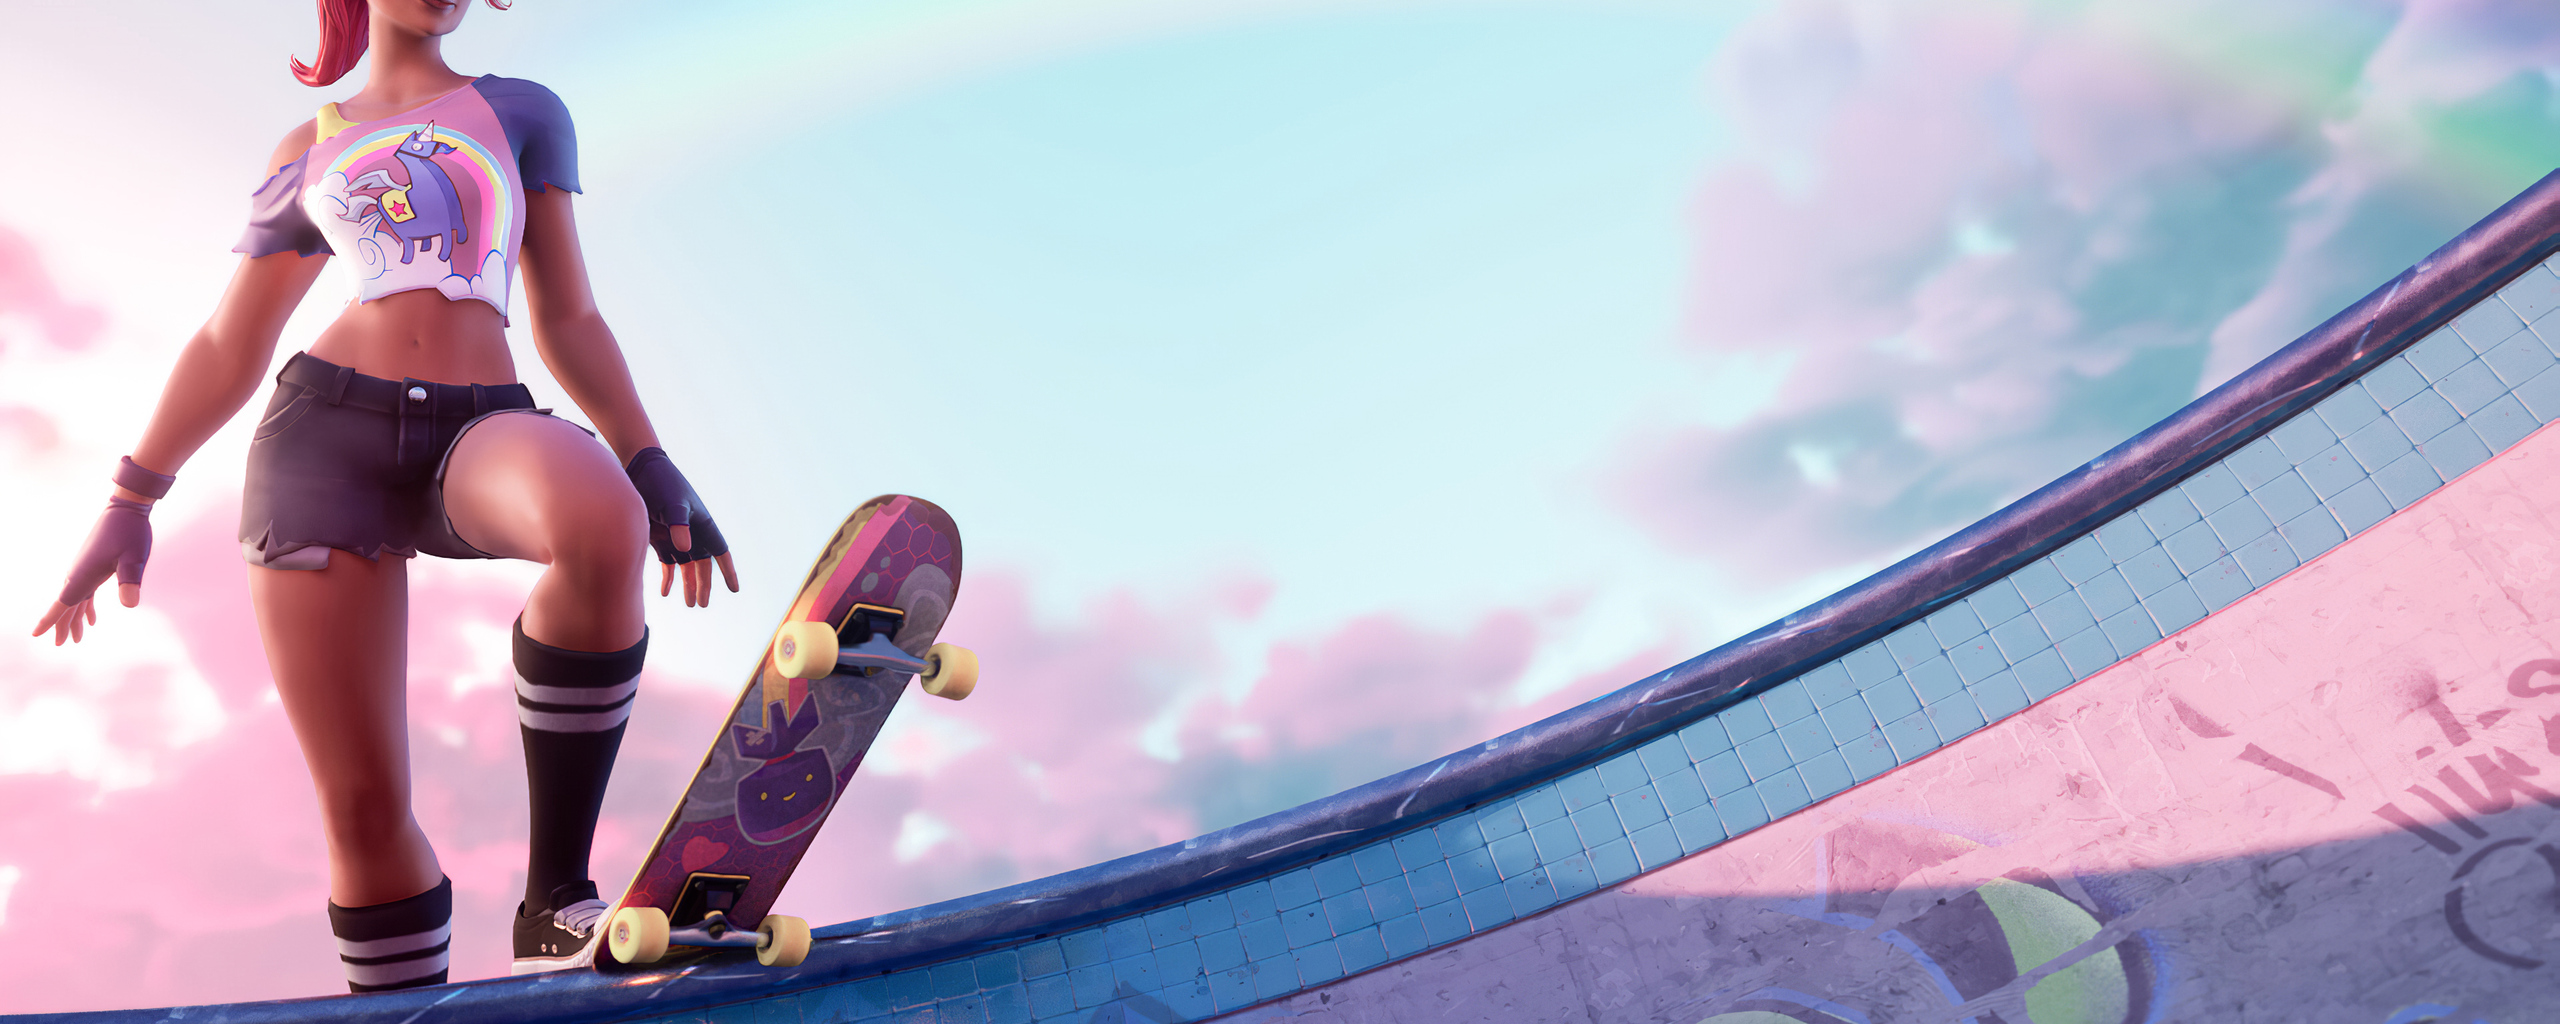 fortnite-skateboarder-dh.jpg